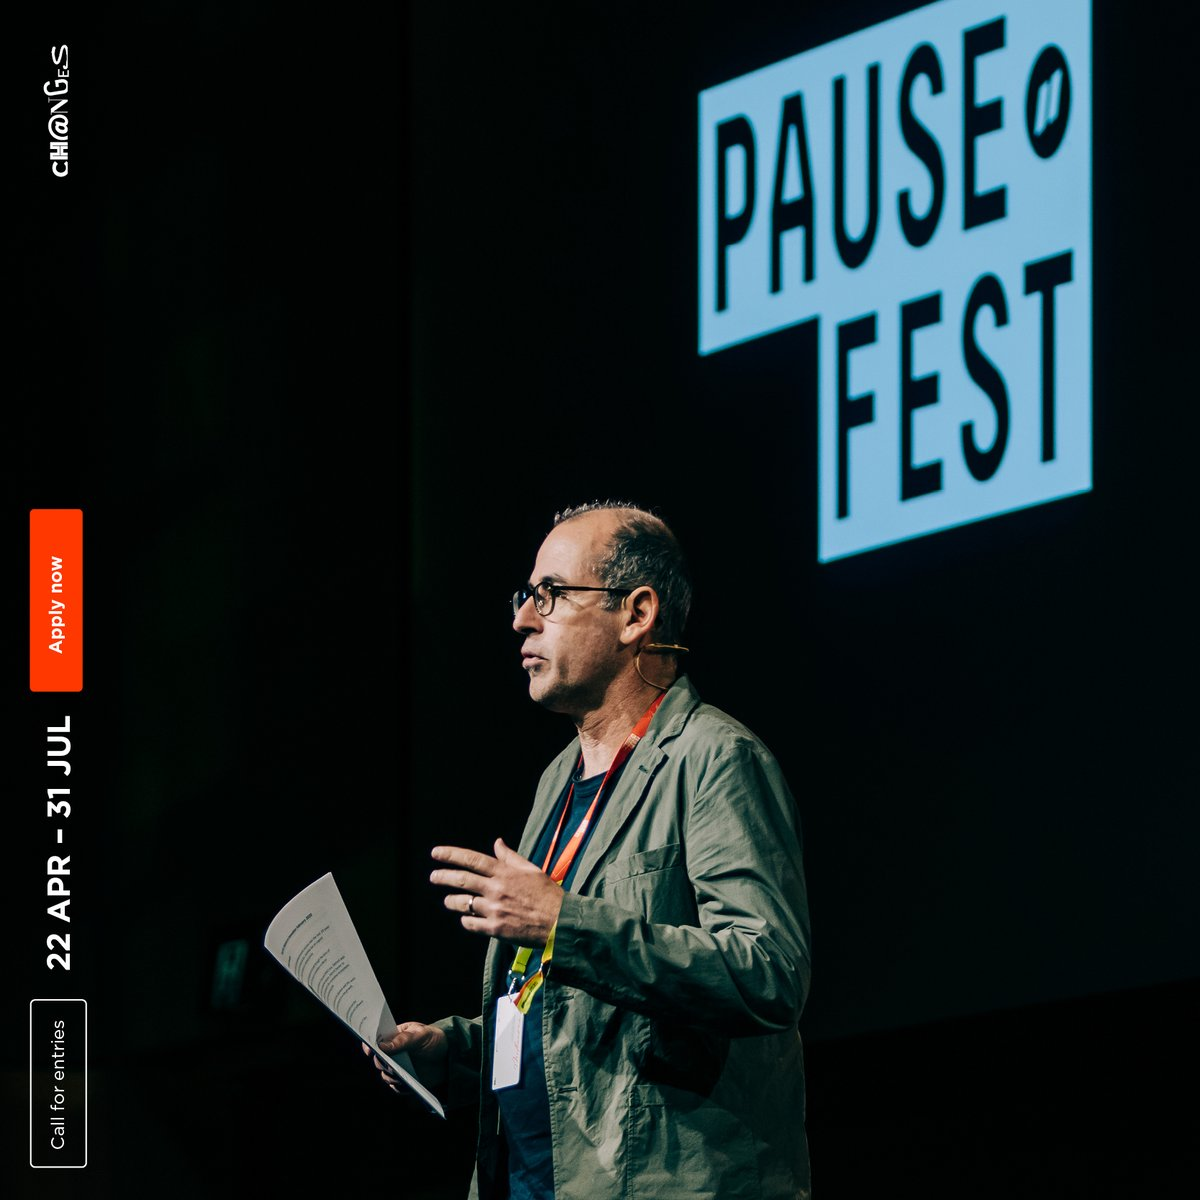 .@PaulBassat, Co-founder and Partner, @SquarePegCap explored the challenges and immense opportunity of transitioning to a knowledge economy at #Pause2020.  You can share your ideas at the next event by applying here:   #innovation #changes #australia